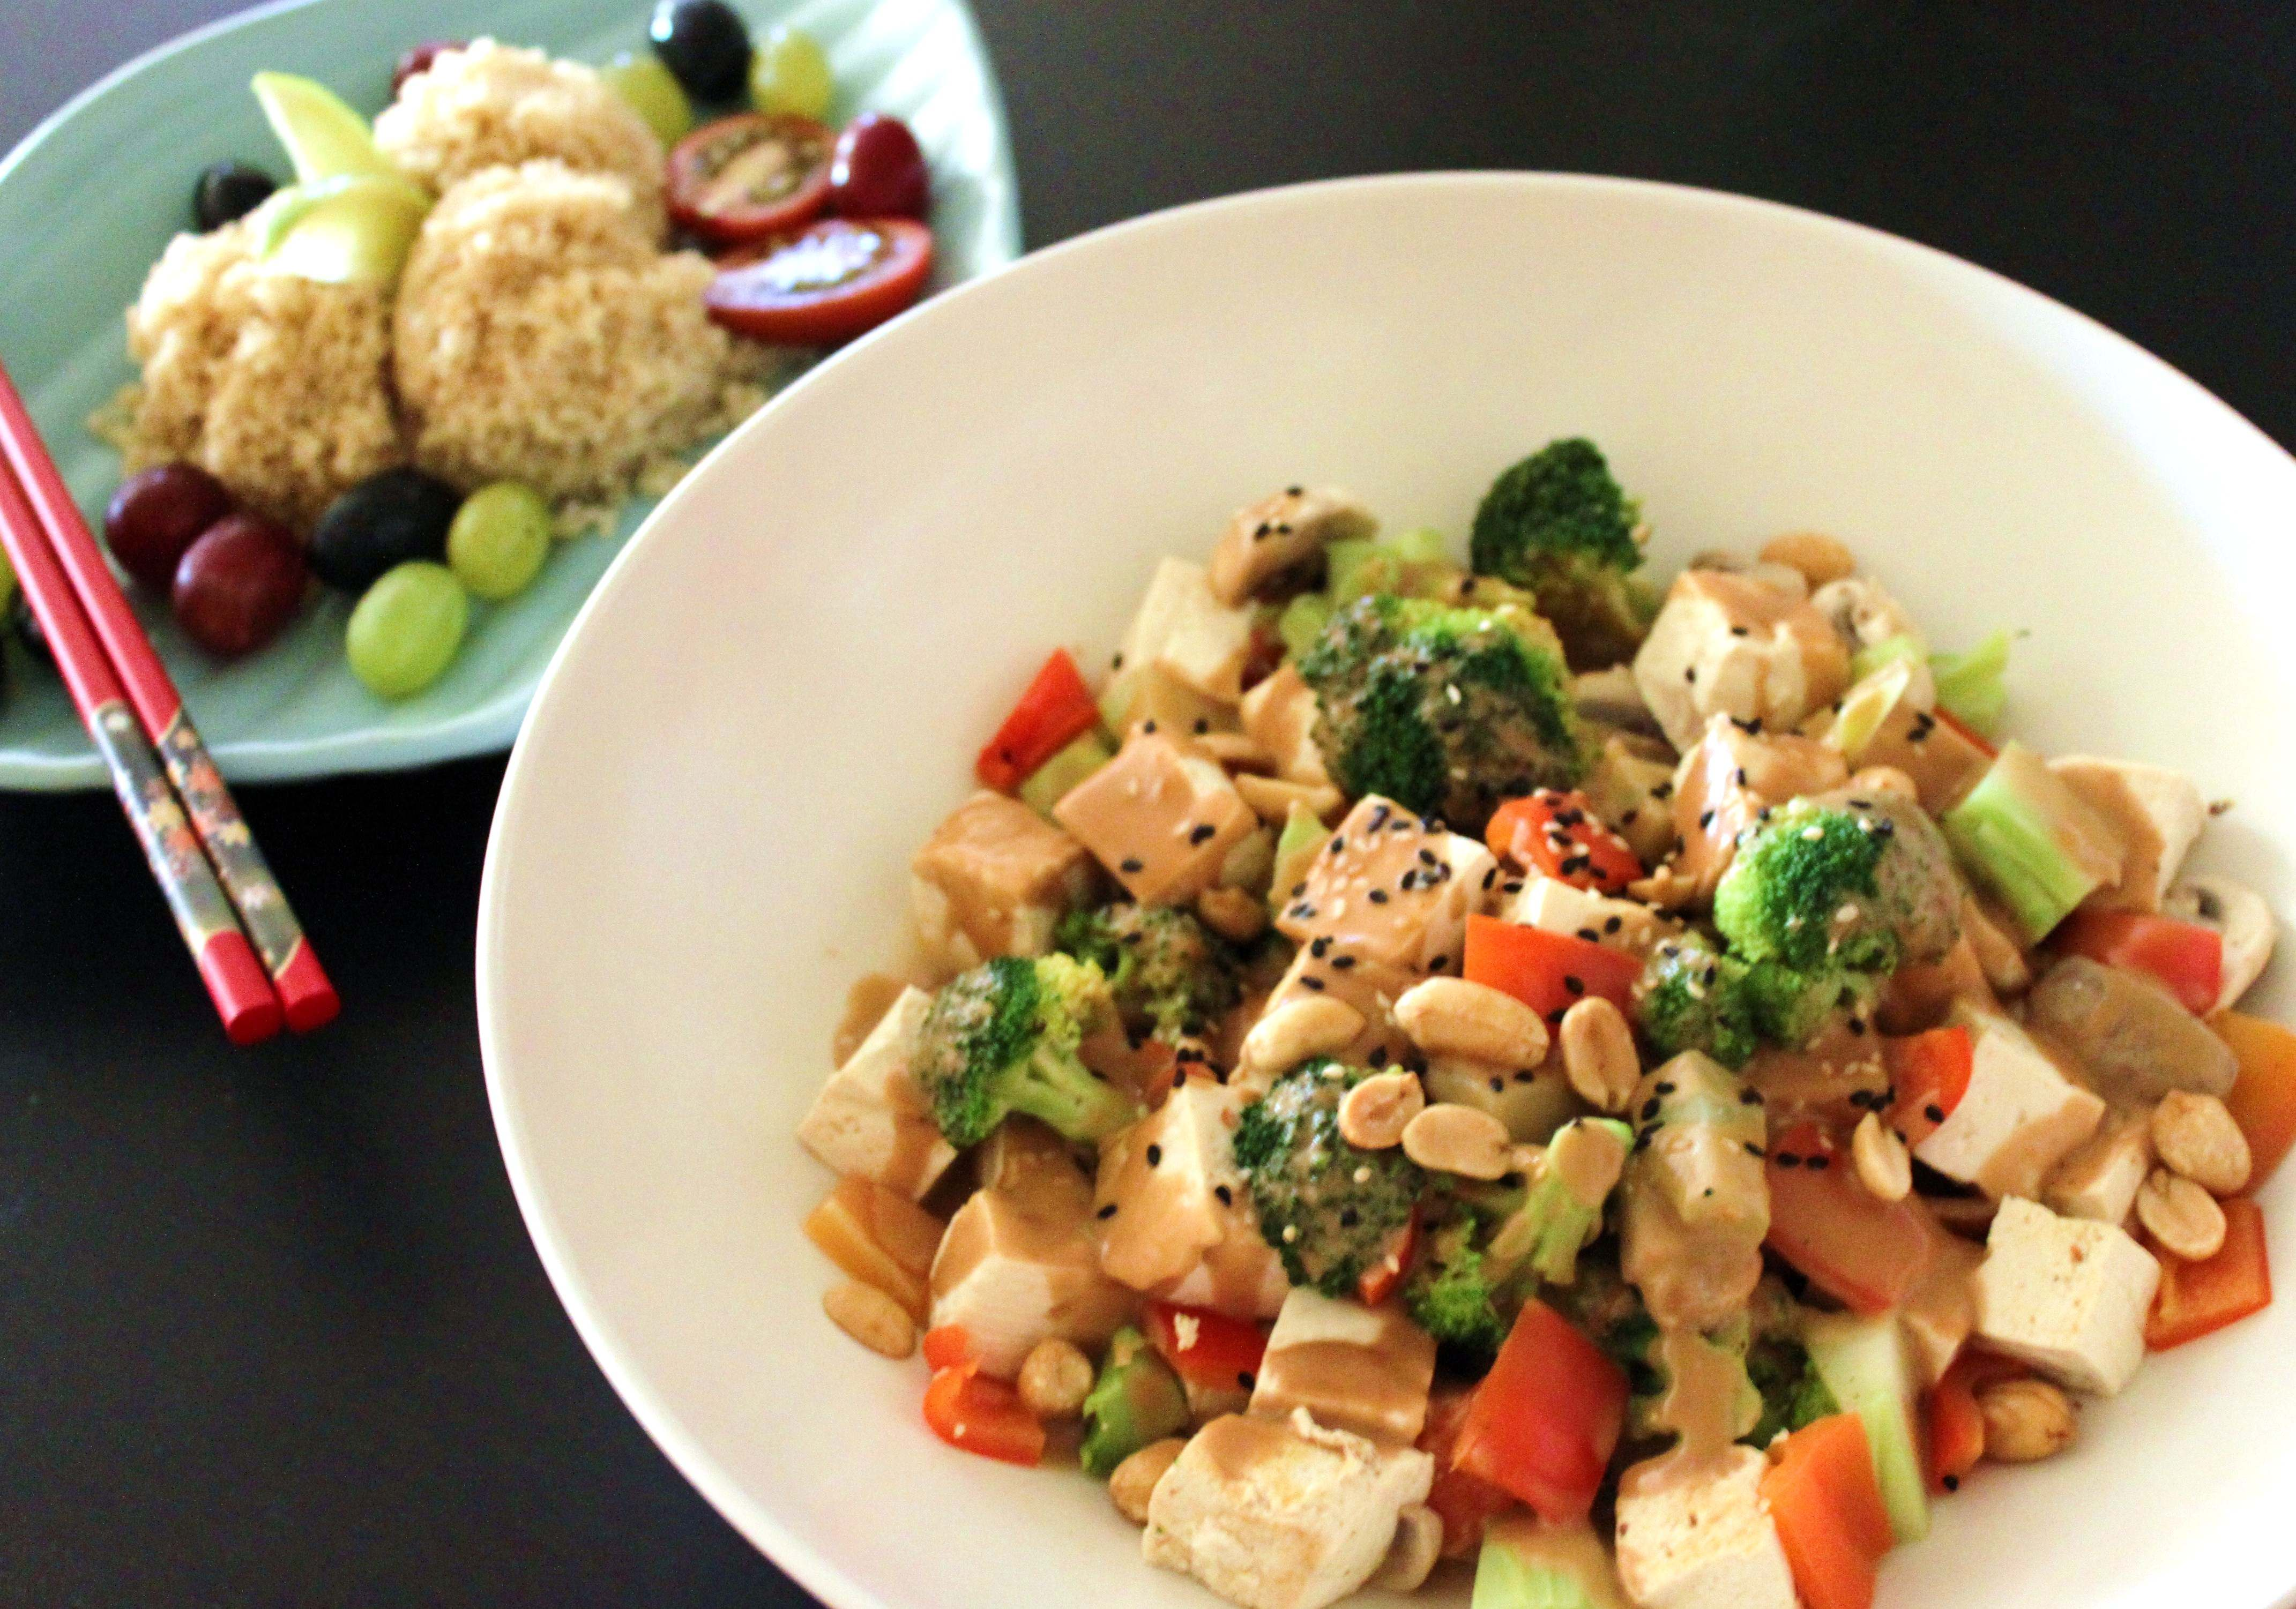 Quinoa makes a wonderful base for this Peanut Sauce Stir Fry with Tofu ...